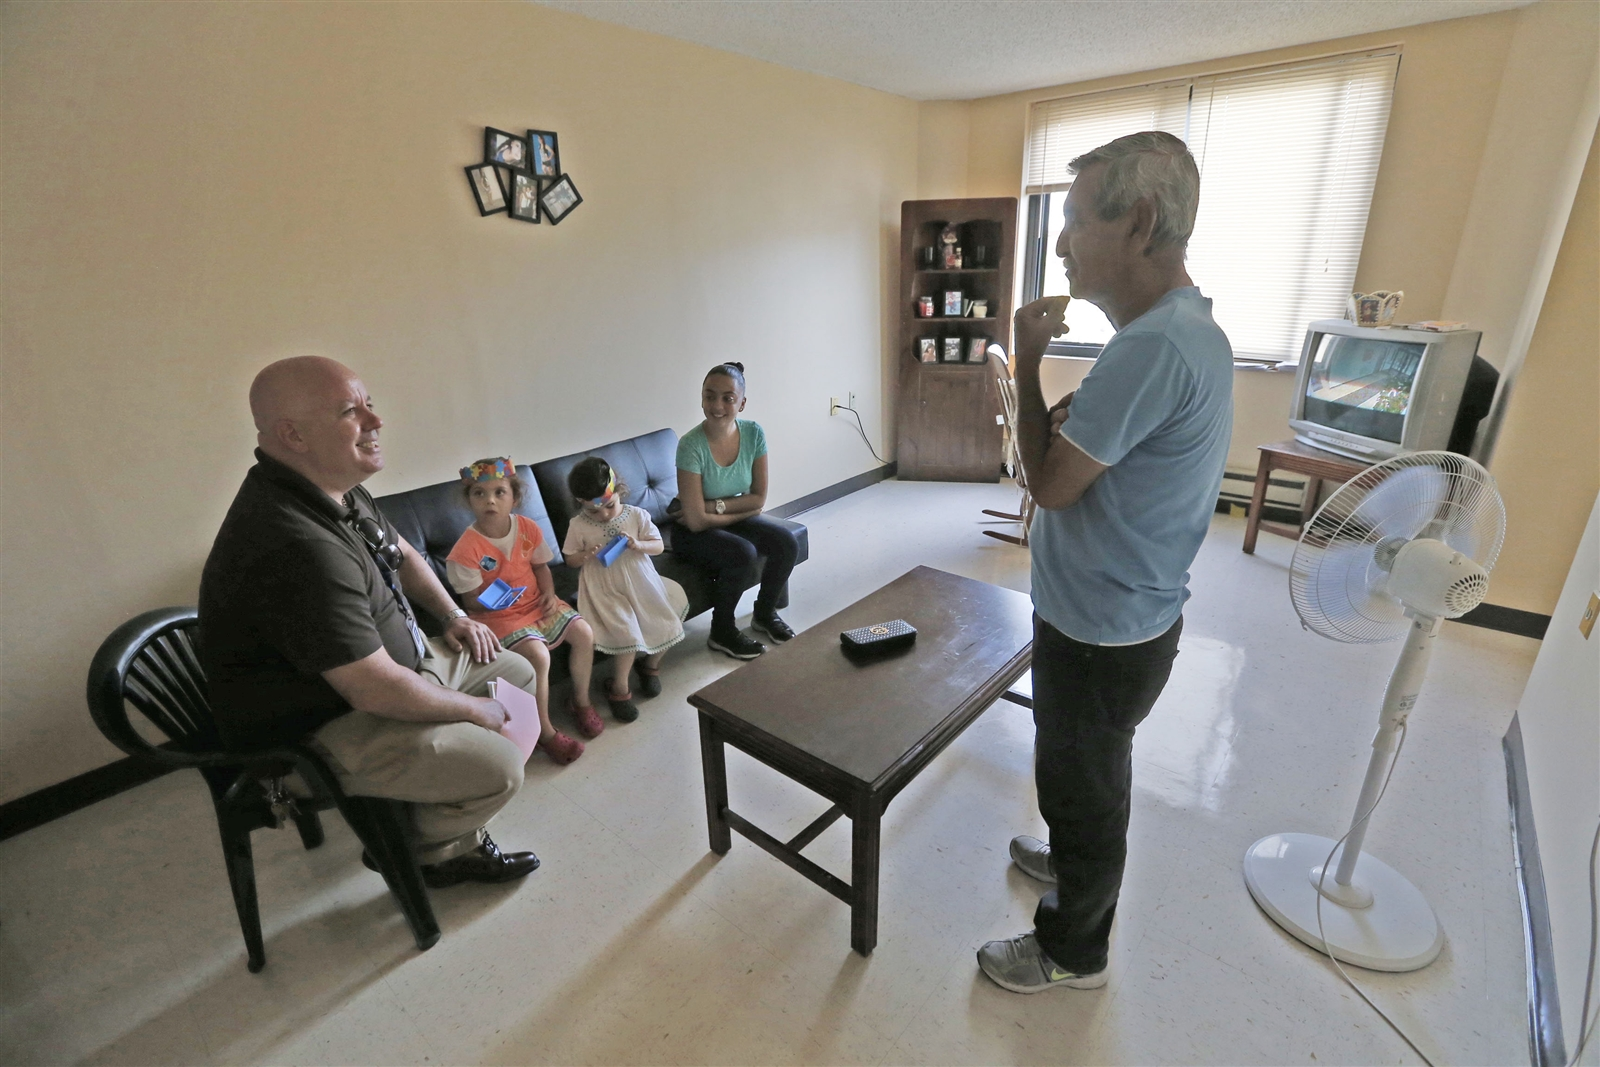 John Starkey, left, the new principal at Lafayette International High School, with his daughters Mia Luz, 3, in white, and Marisol, 5, in pink, visit the apartment of Hector Virella, standing, in the Santa Maria Towers apartments, and his daughter Angelica Viyella Torres, 19, second from right, and tries to persuade them for her to come to his school.